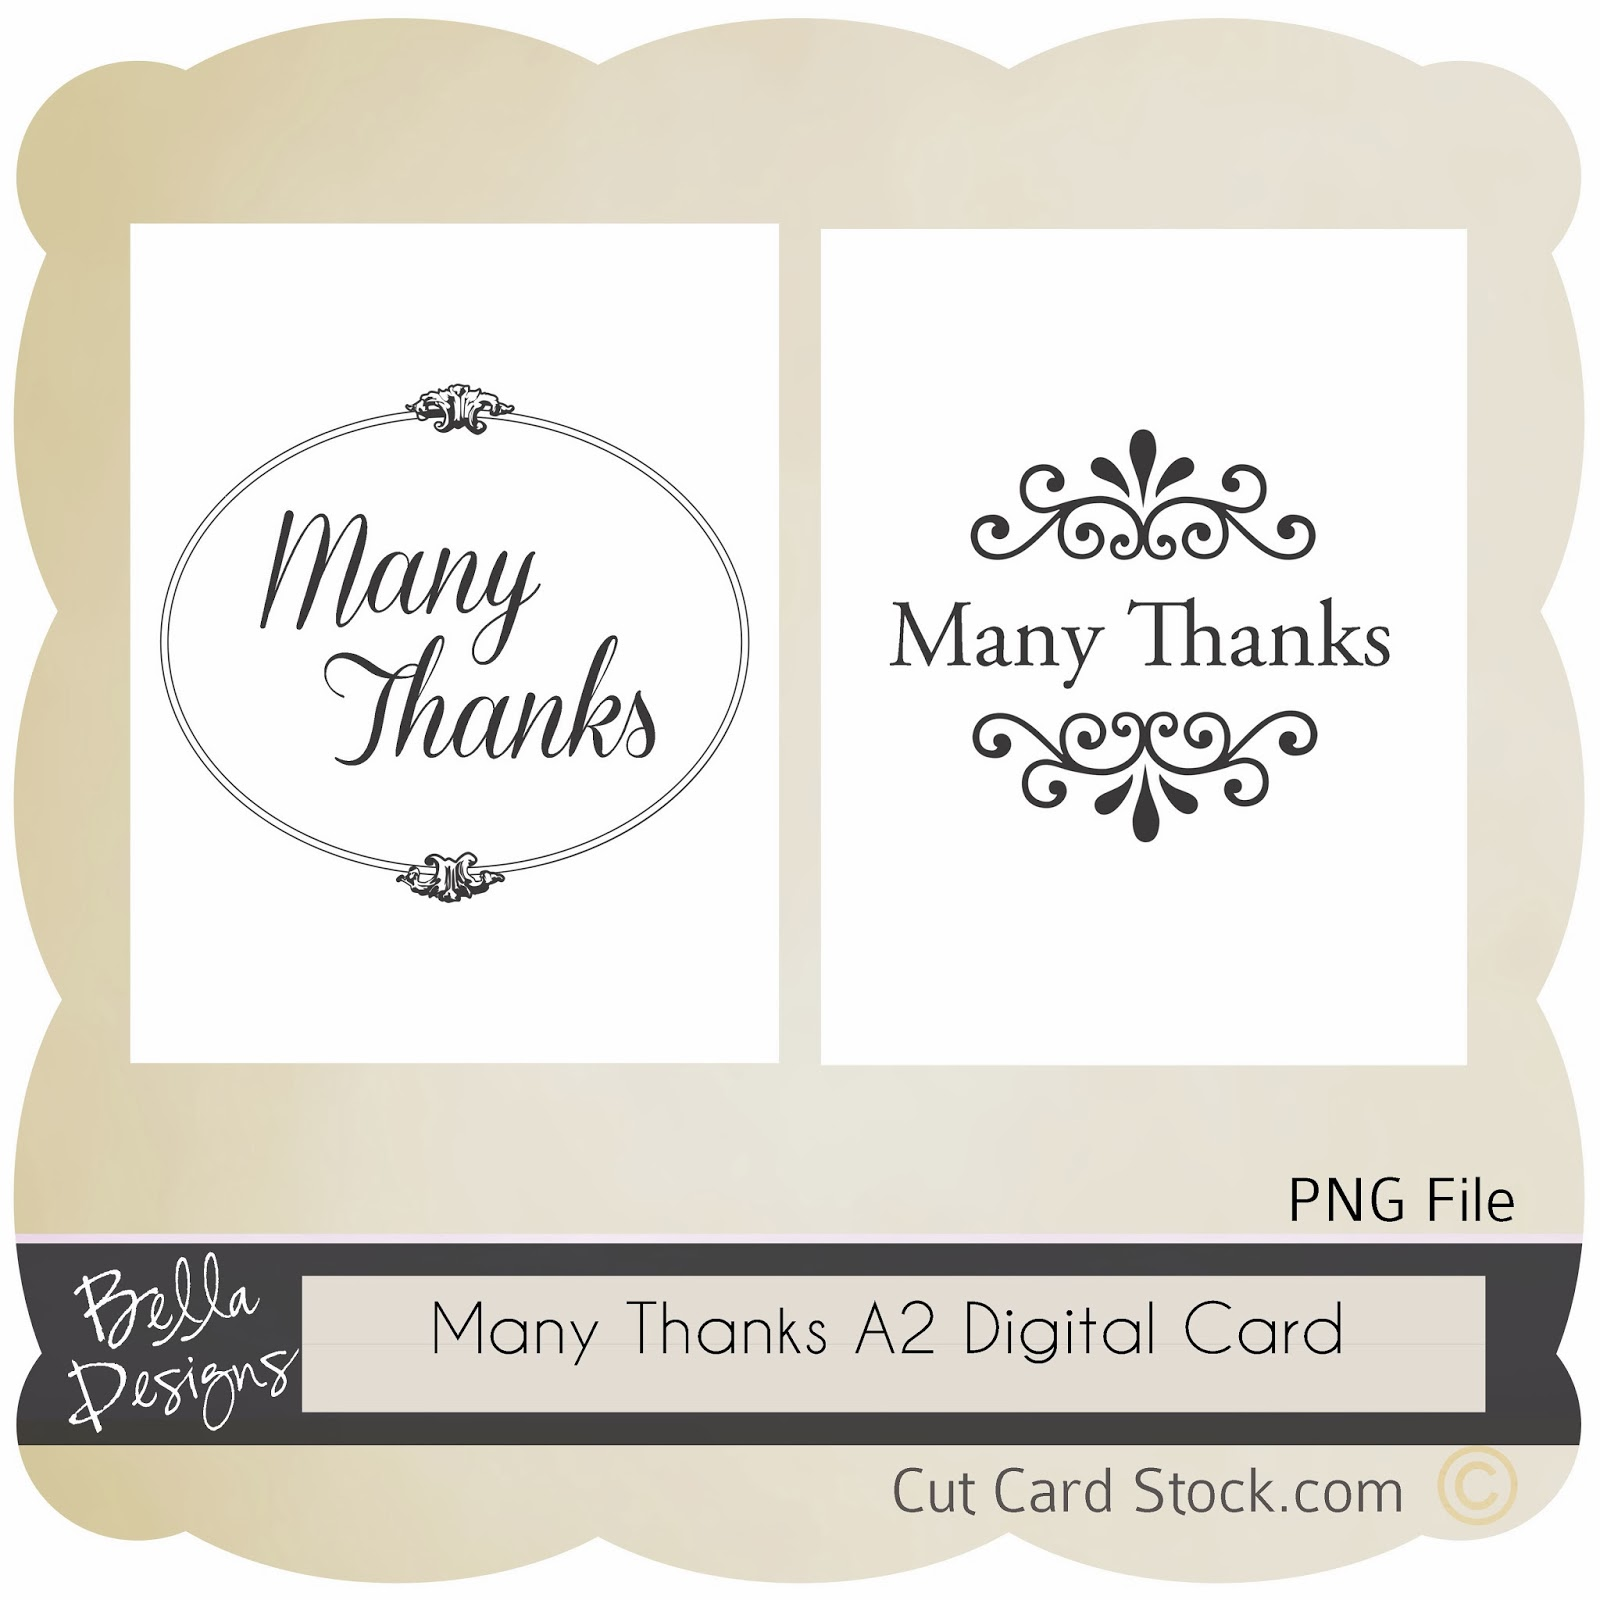 Free Digital Download Many Thanks Digital Cards Cutcardstock